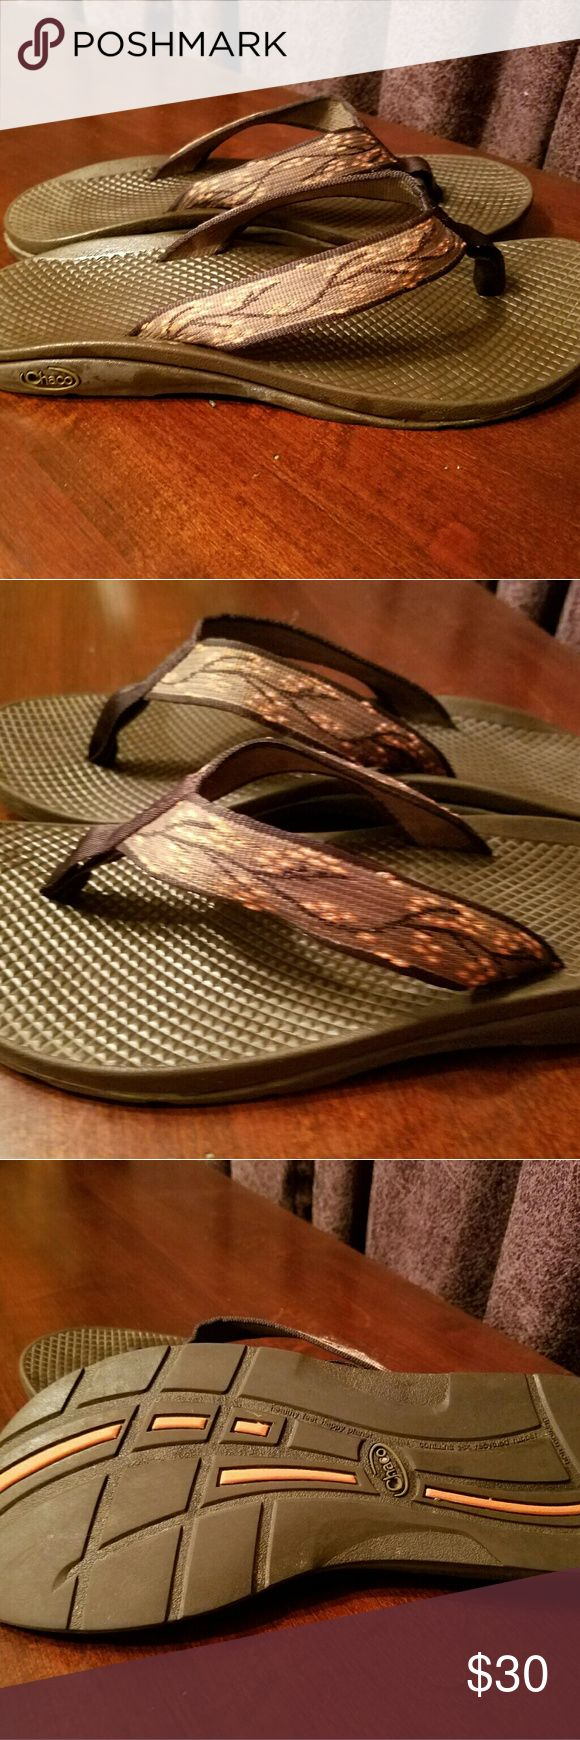 Chaco Flip Flops Cherry Blossom Brown Women's Chaco USA flip flops with brown ecotread sole and cherry blossom webbing. In excellent condition, virtually no wear. Size 10. Chaco Shoes Sandals